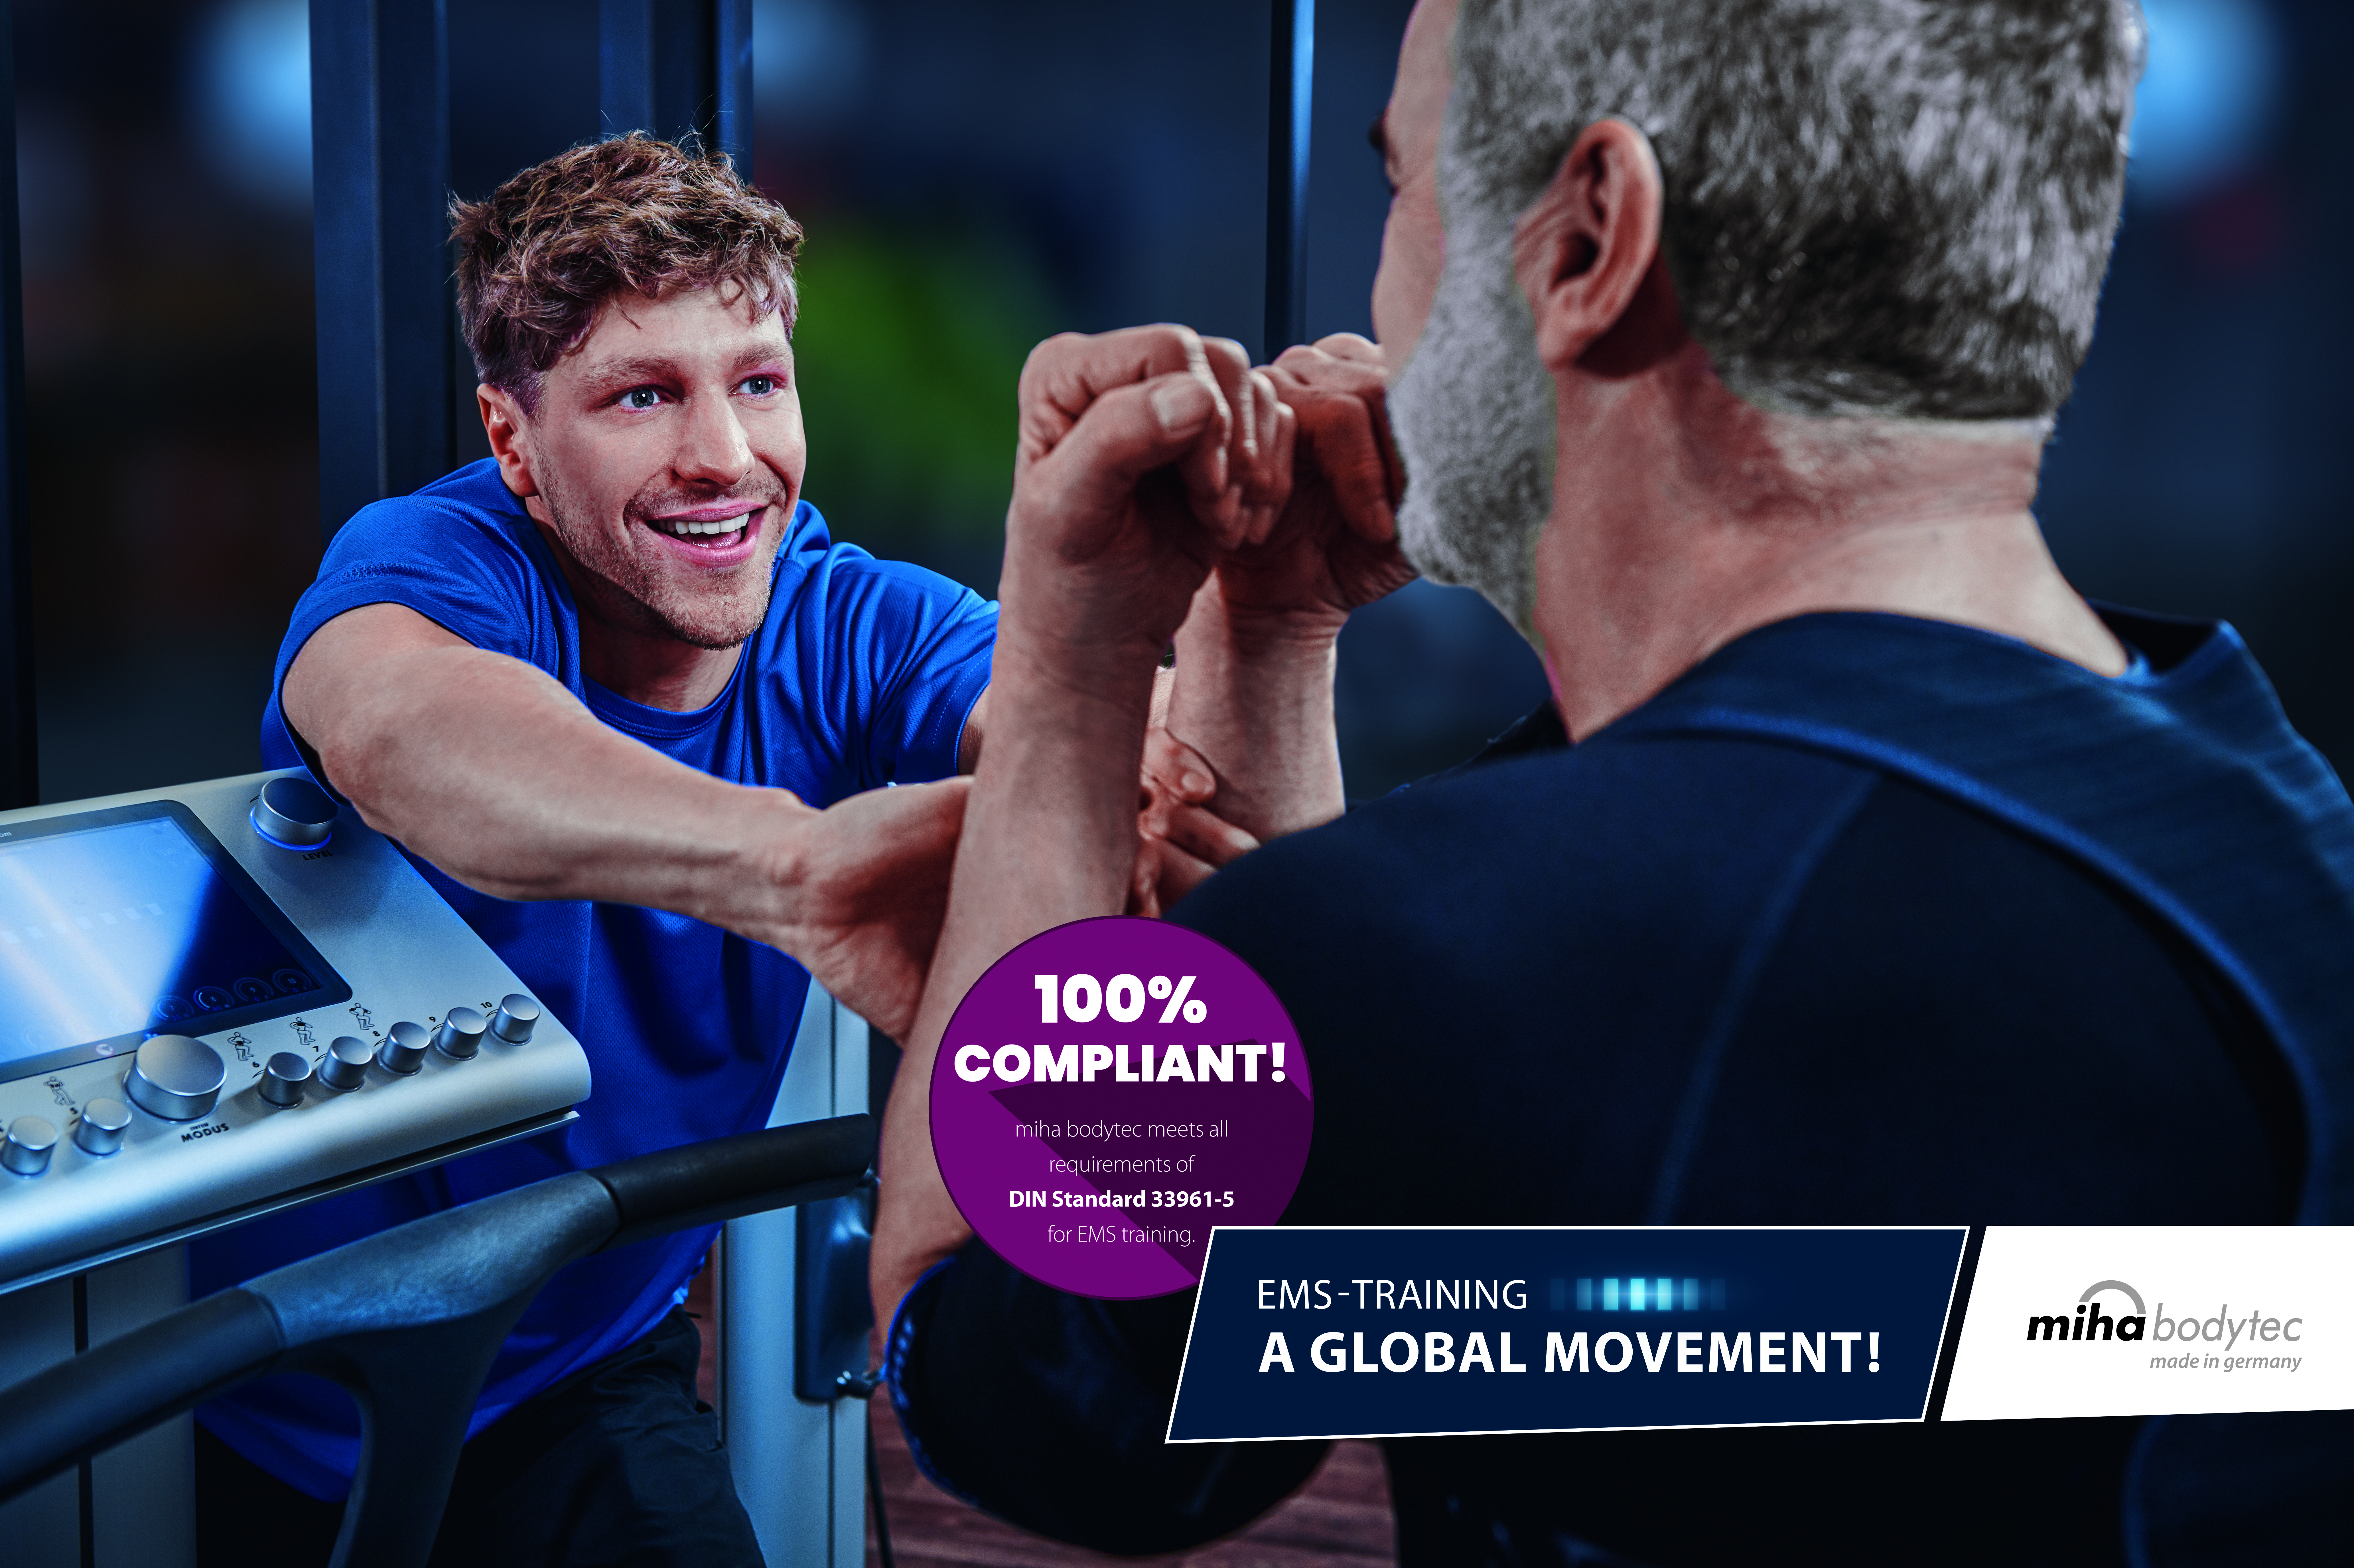 miha bodytec – the whole-body Electro Muscular Stimulation (WB-EMS) training system set to shake up the industry